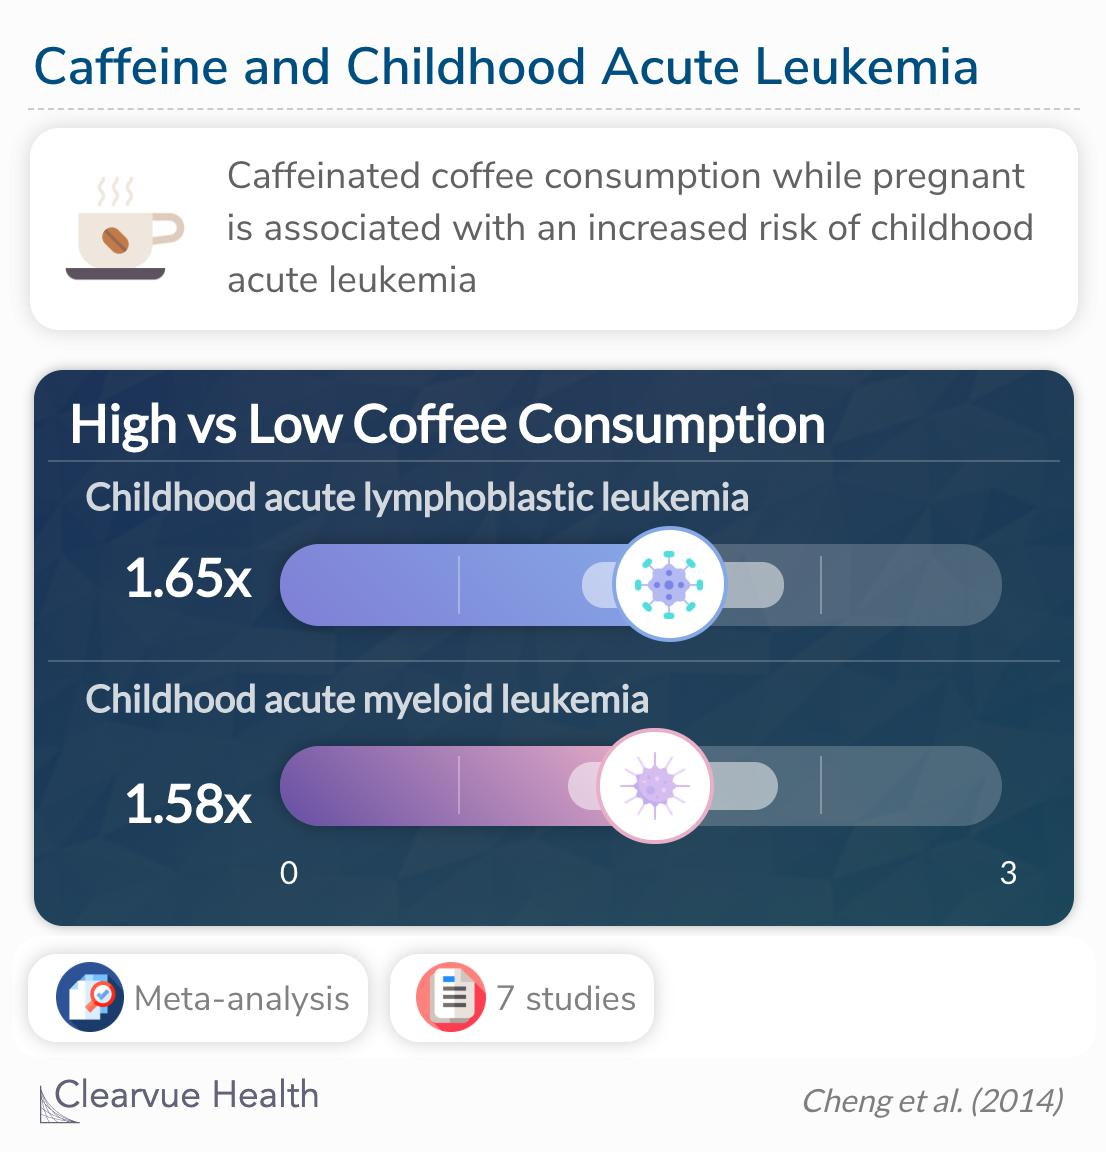 maternal coffee consumption was statistically significantly associated with childhood ALL and childhood AML.